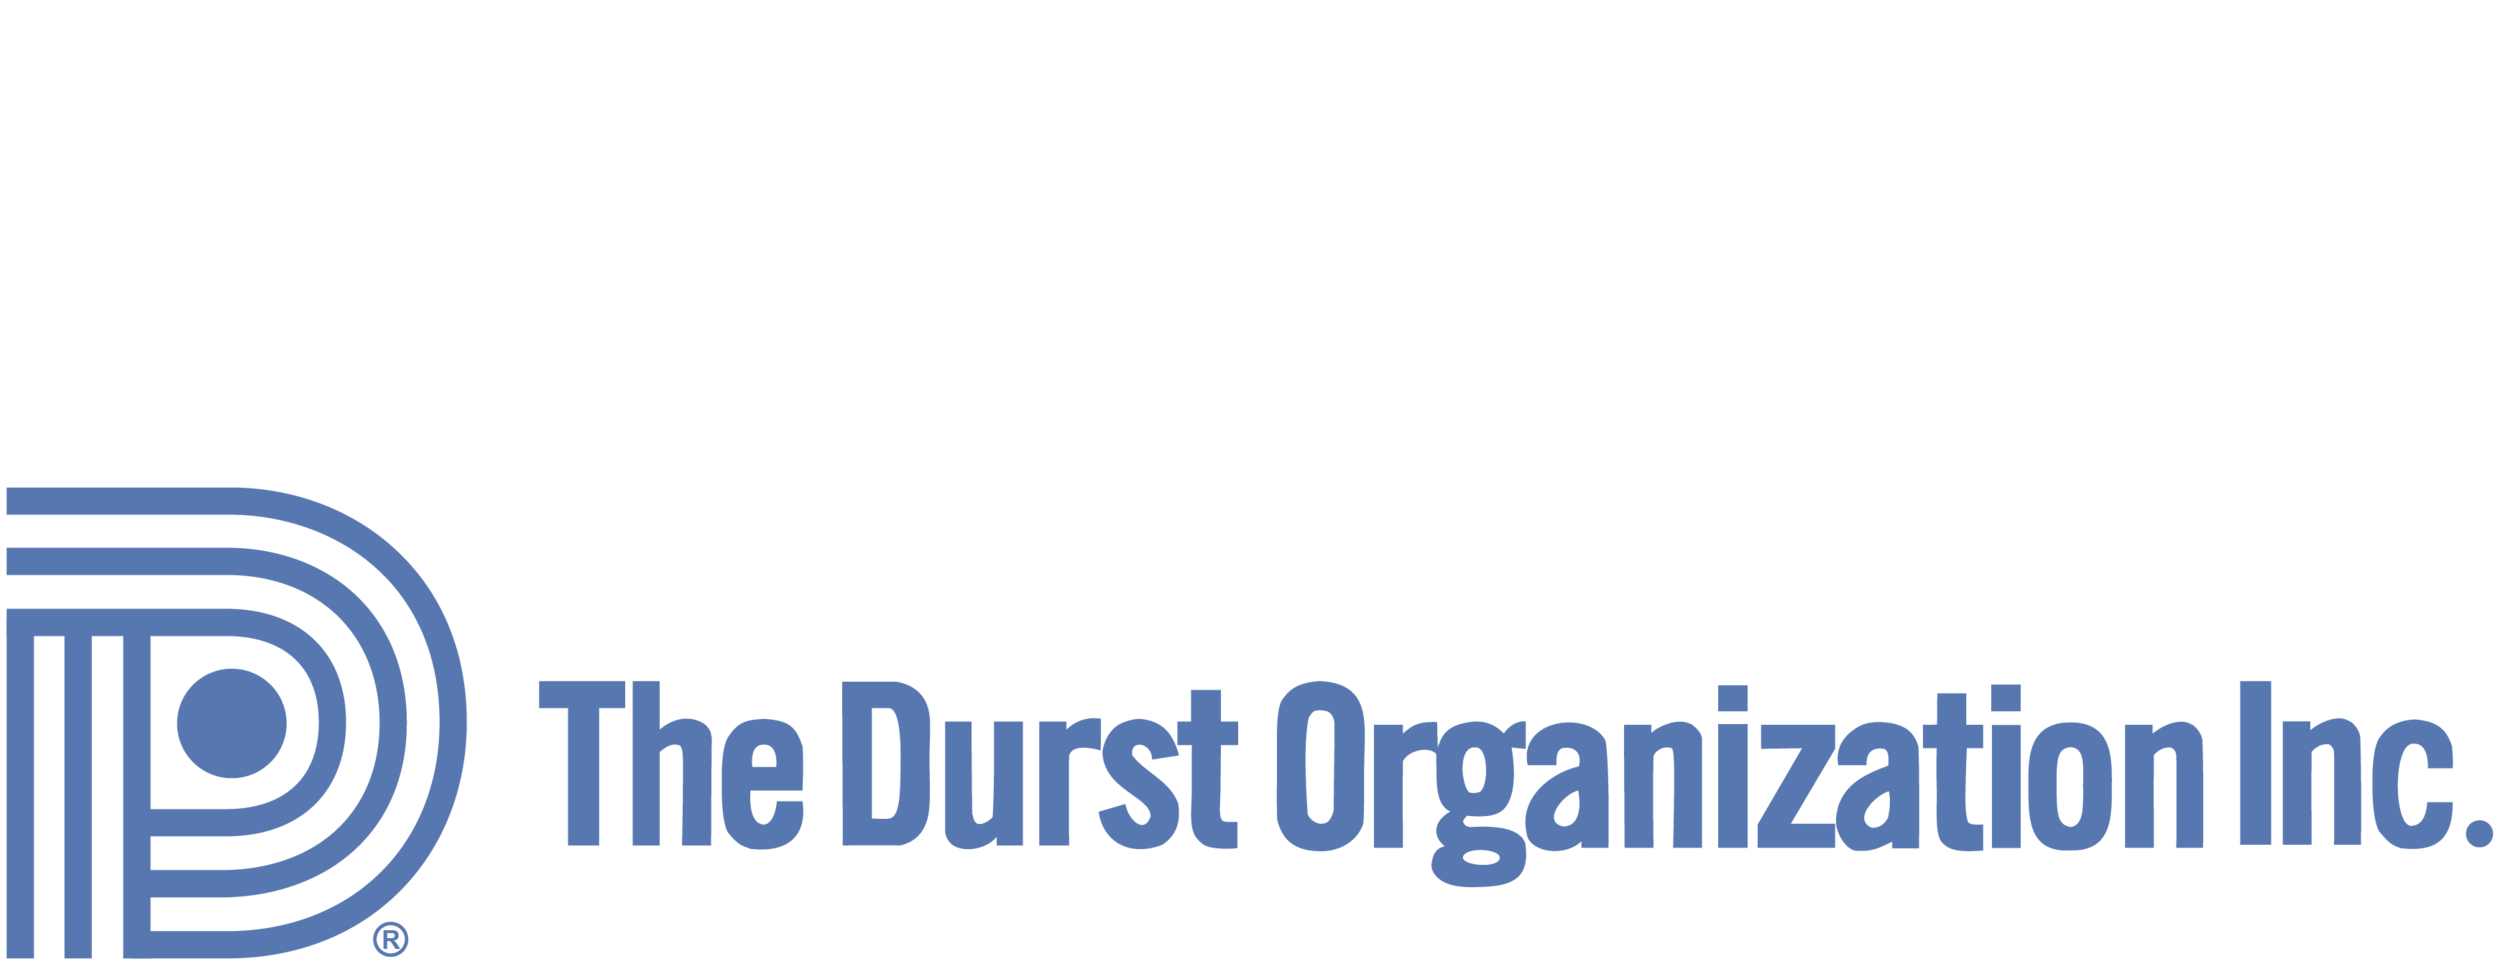 durst-organization-logo-transparent1.png